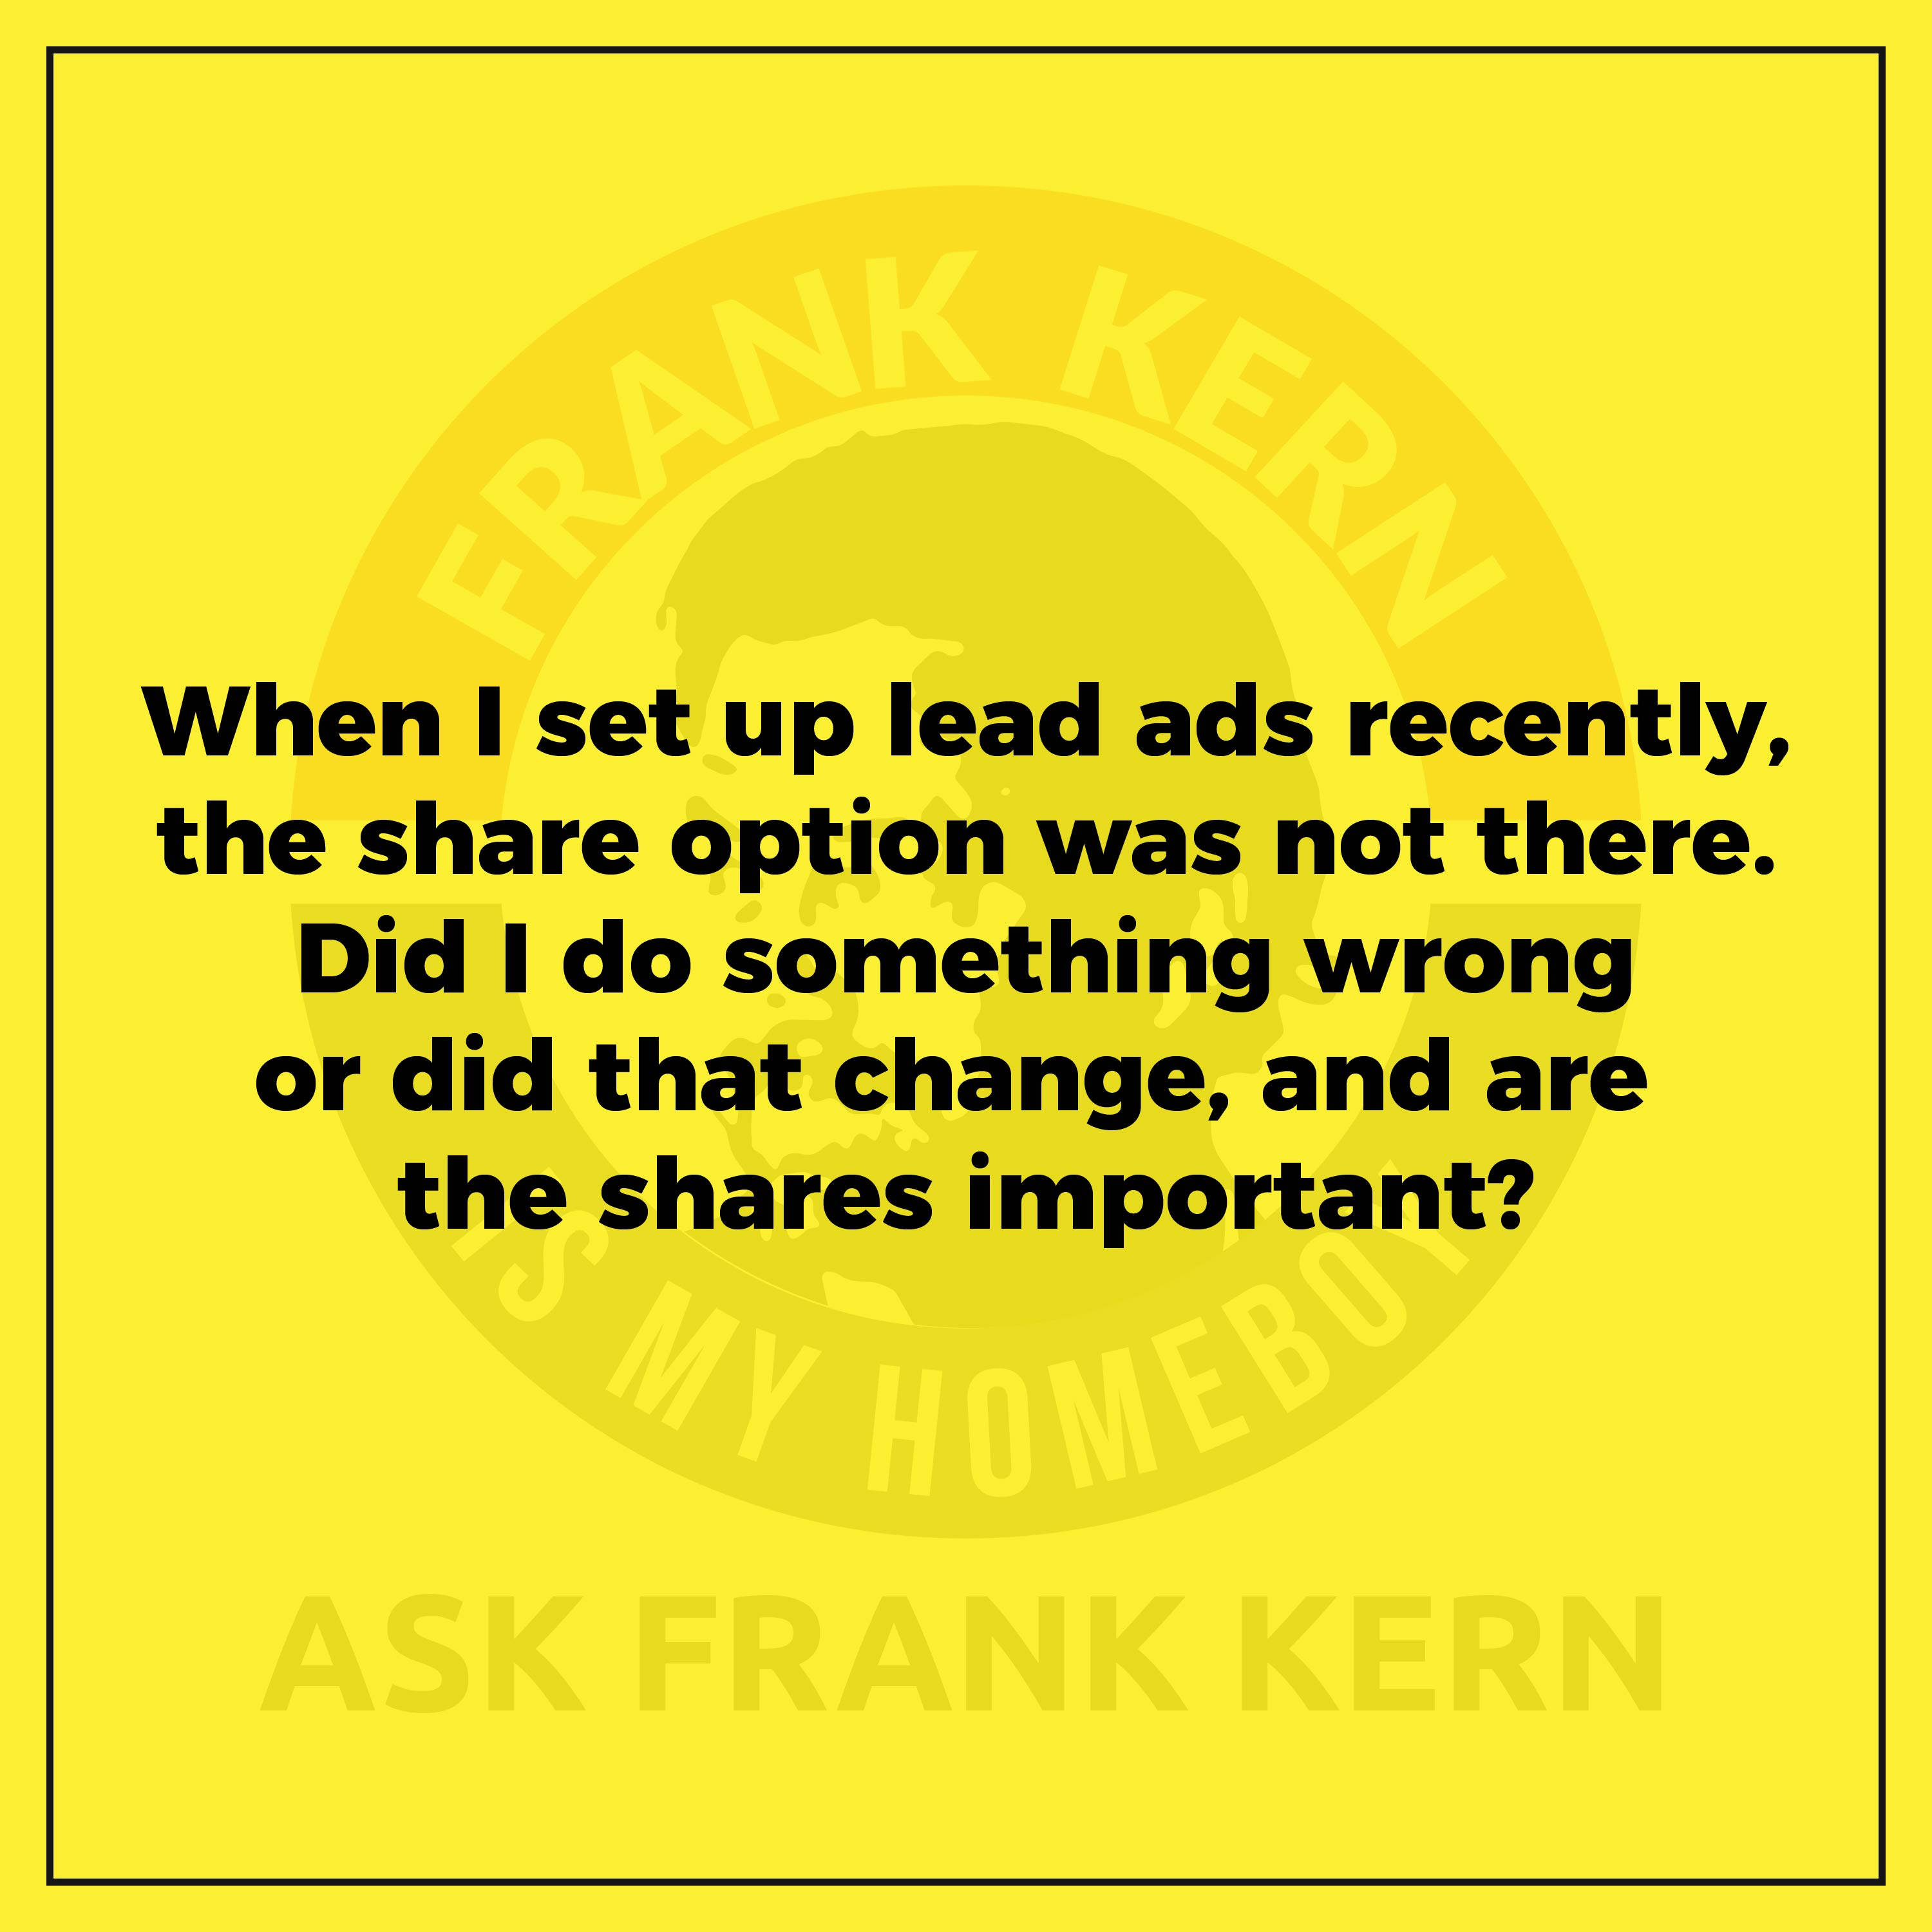 When I set up lead ads recently, the share option was not there. Did I do something wrong or did that change, and are the shares important?